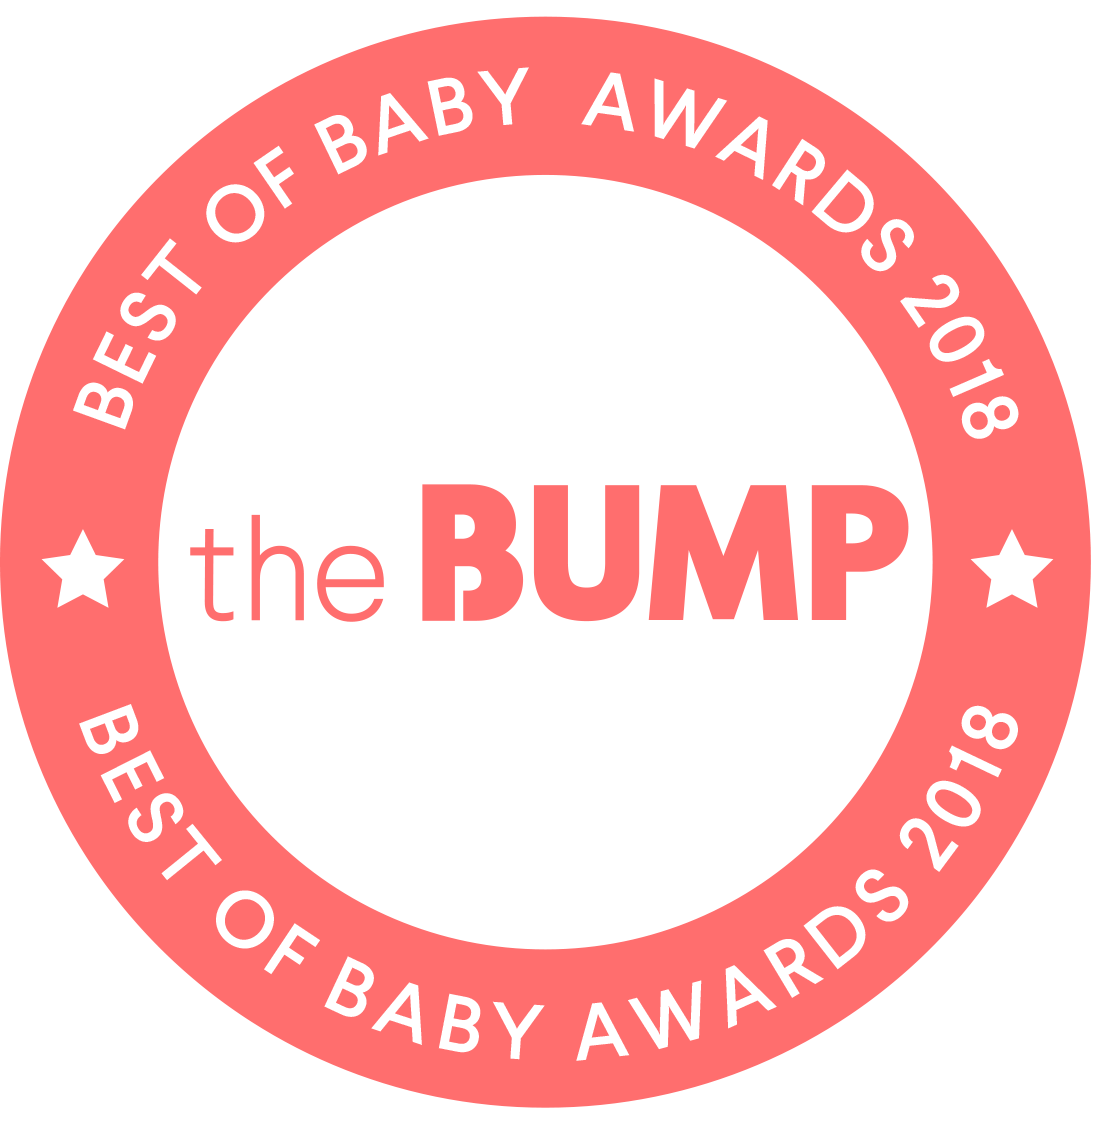 Best Of Baby 2018 See All The Gear Winners For This Year